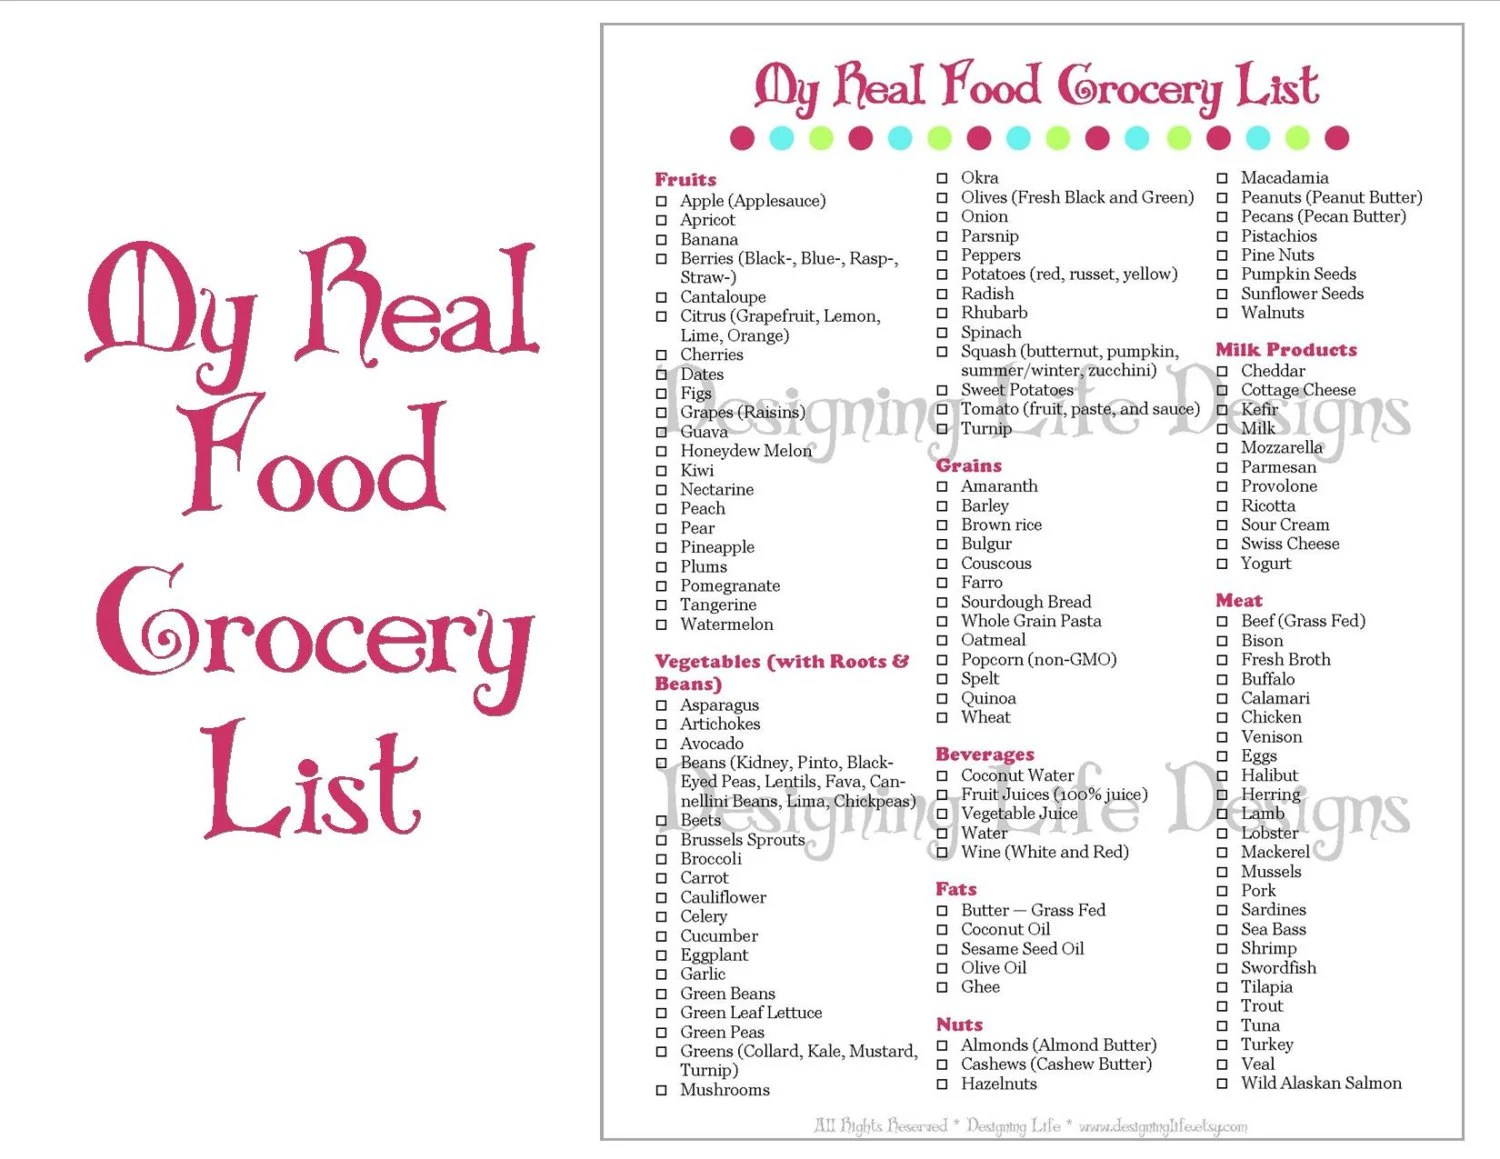 Real Food Grocery Shopping List Printable for Meal Planning Etsy